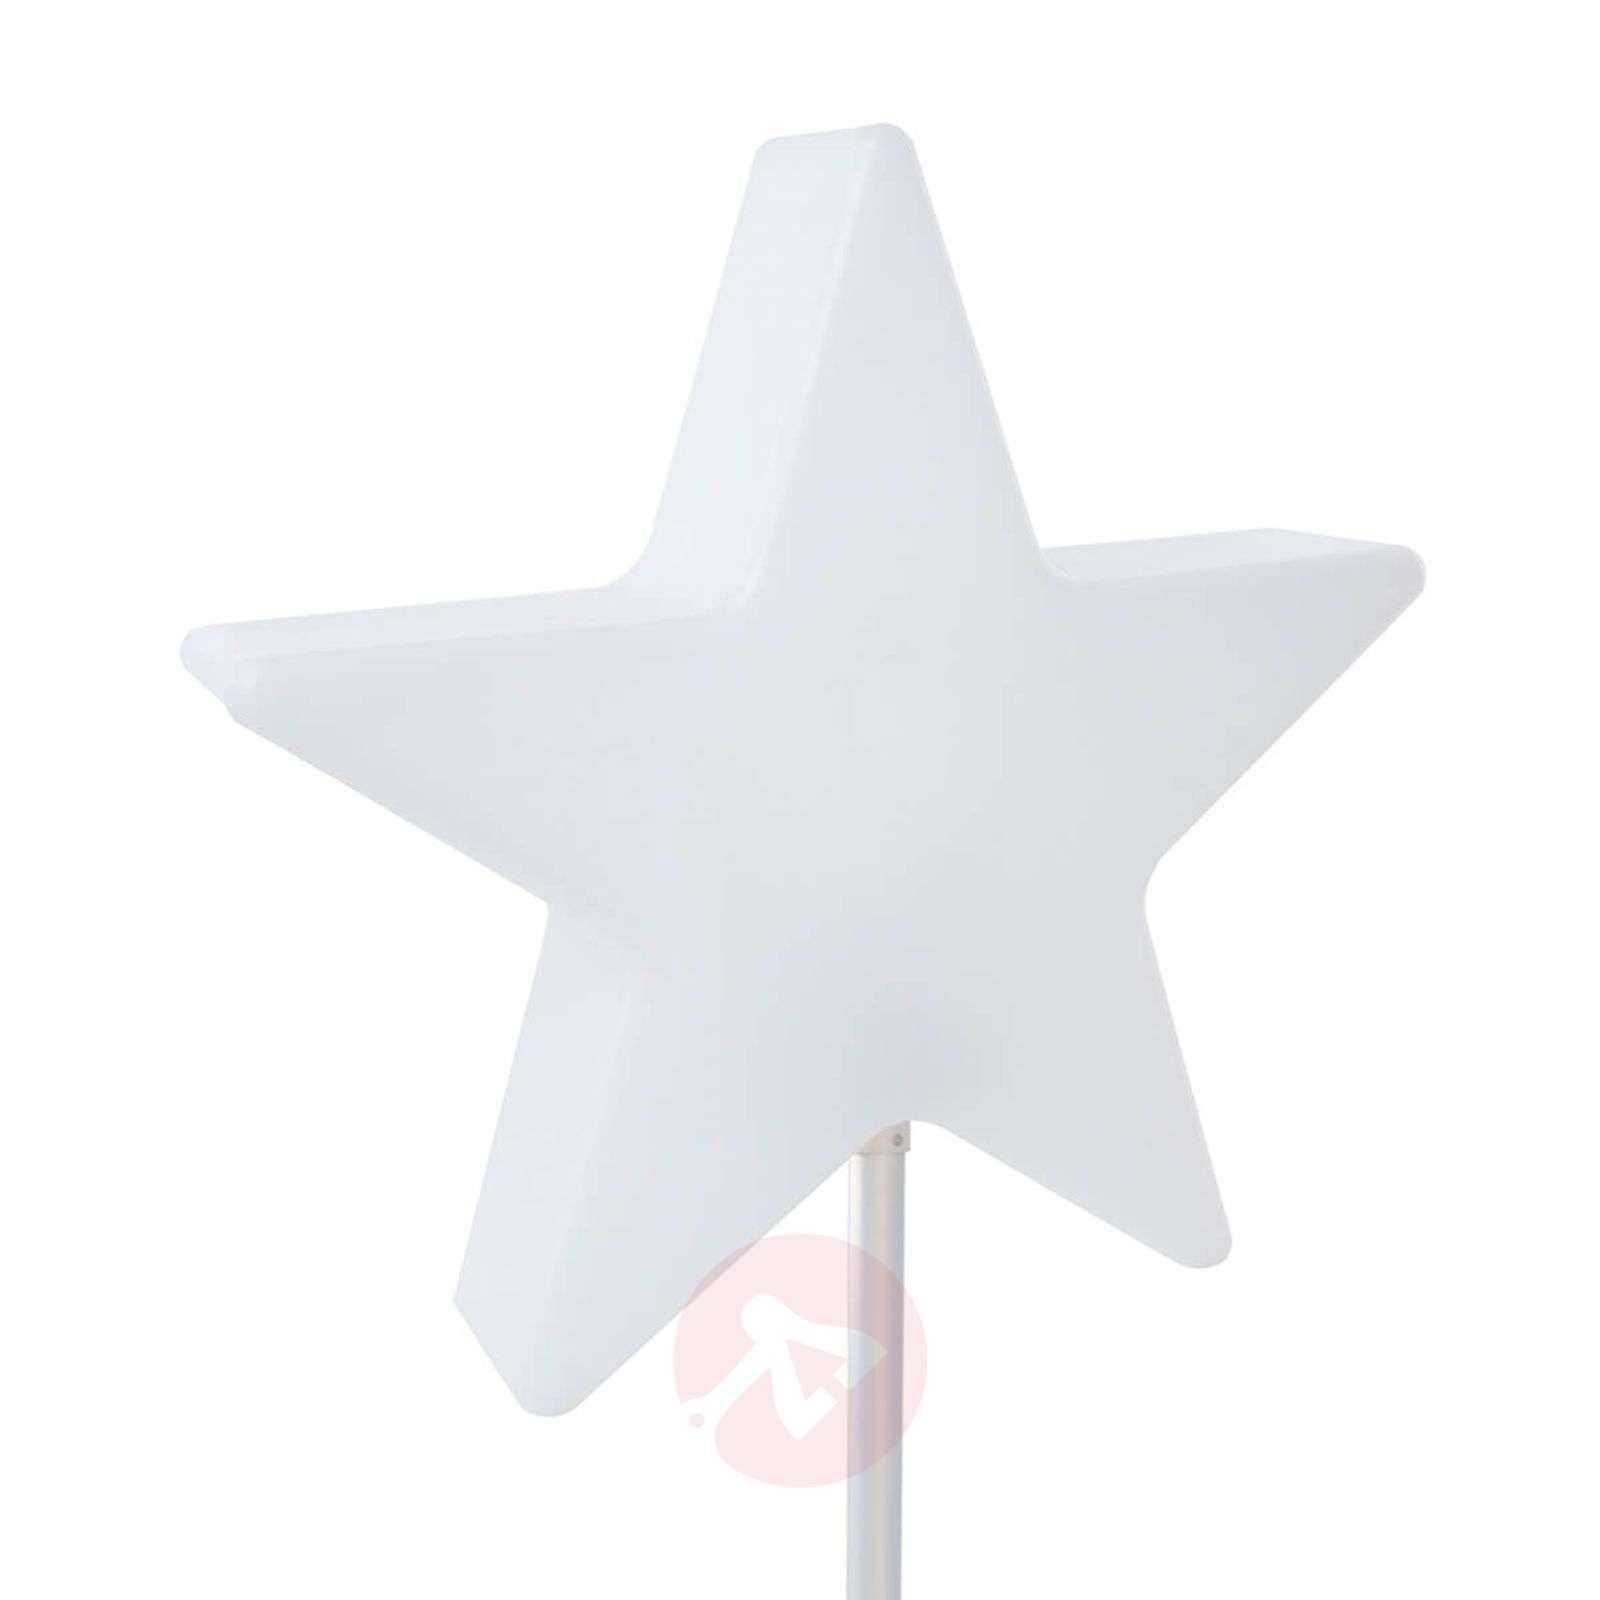 Stella luminosa Star su barra lunga 100 cm-1004136-01